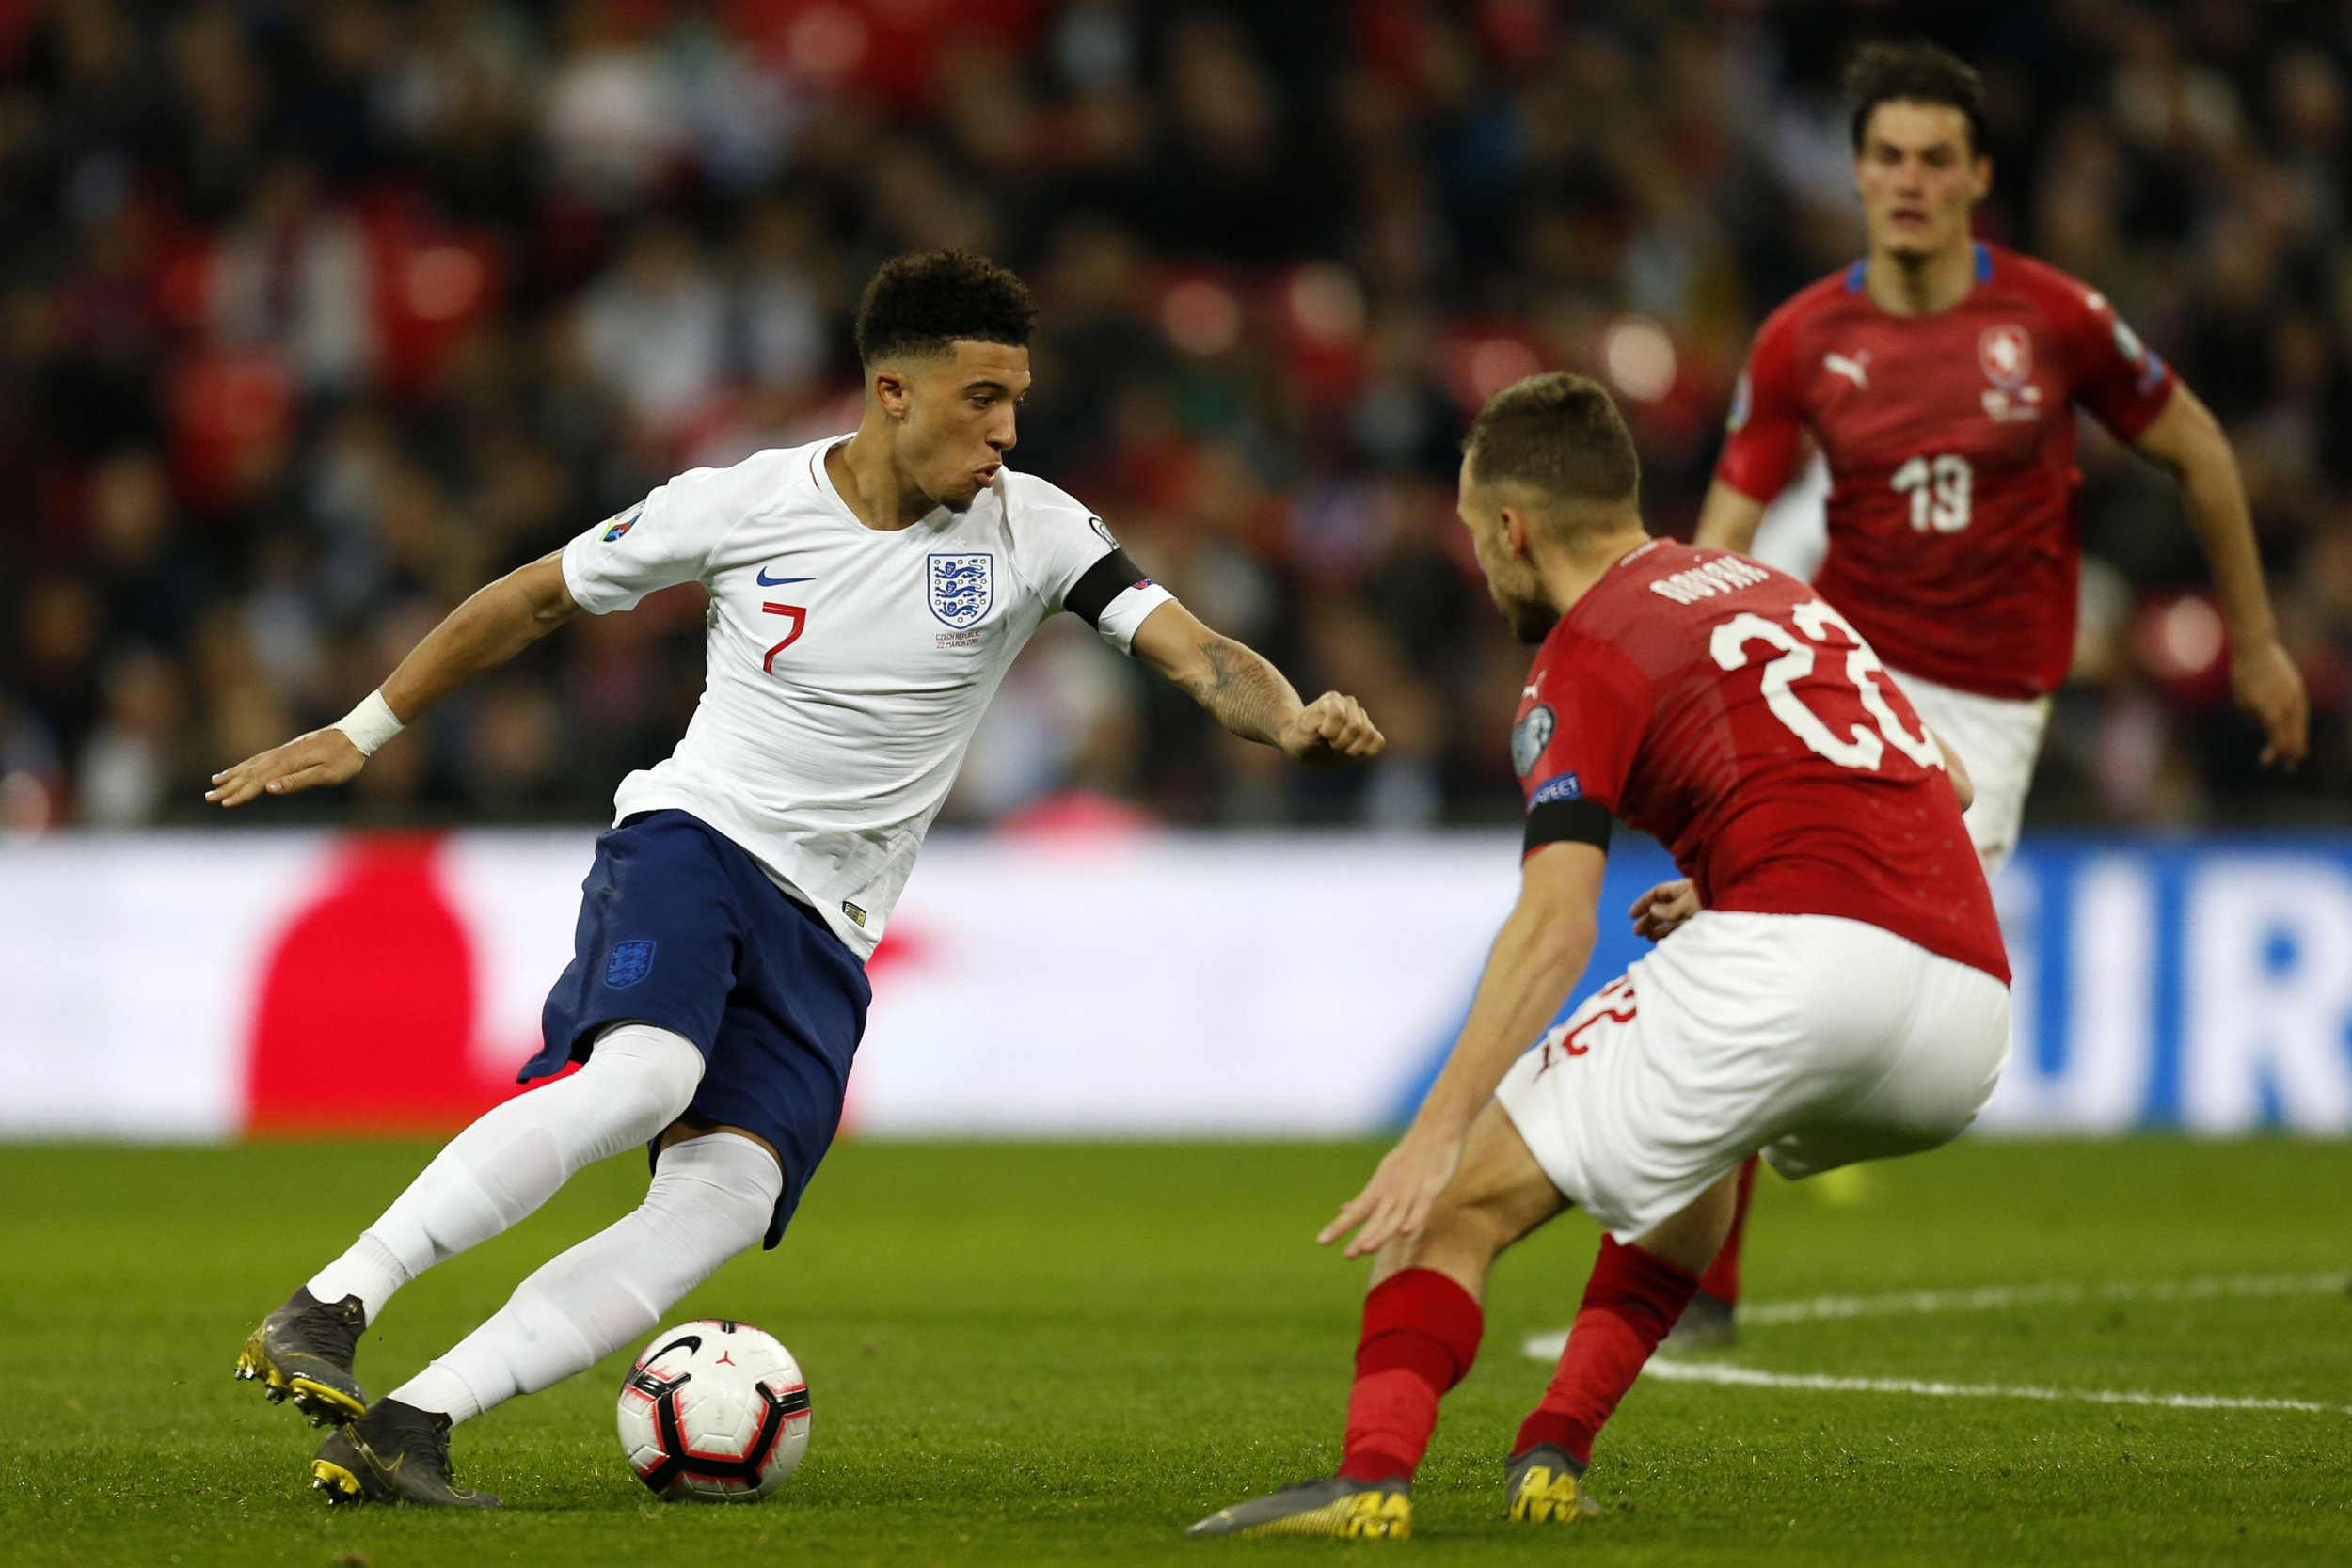 England's midfielder Jadon Sancho (L) vies with Czech Republic's midfielder Filip Novak during the UEFA Euro 2020 Group A qualification football match between England and Czech Replublic at Wembley Stadium in London on March 22, 2019. (Photo by Ian KINGTON / AFP) / NOT FOR MARKETING OR ADVERTISING USE / RESTRICTED TO EDITORIAL USEIAN KINGTON/AFP/Getty Images